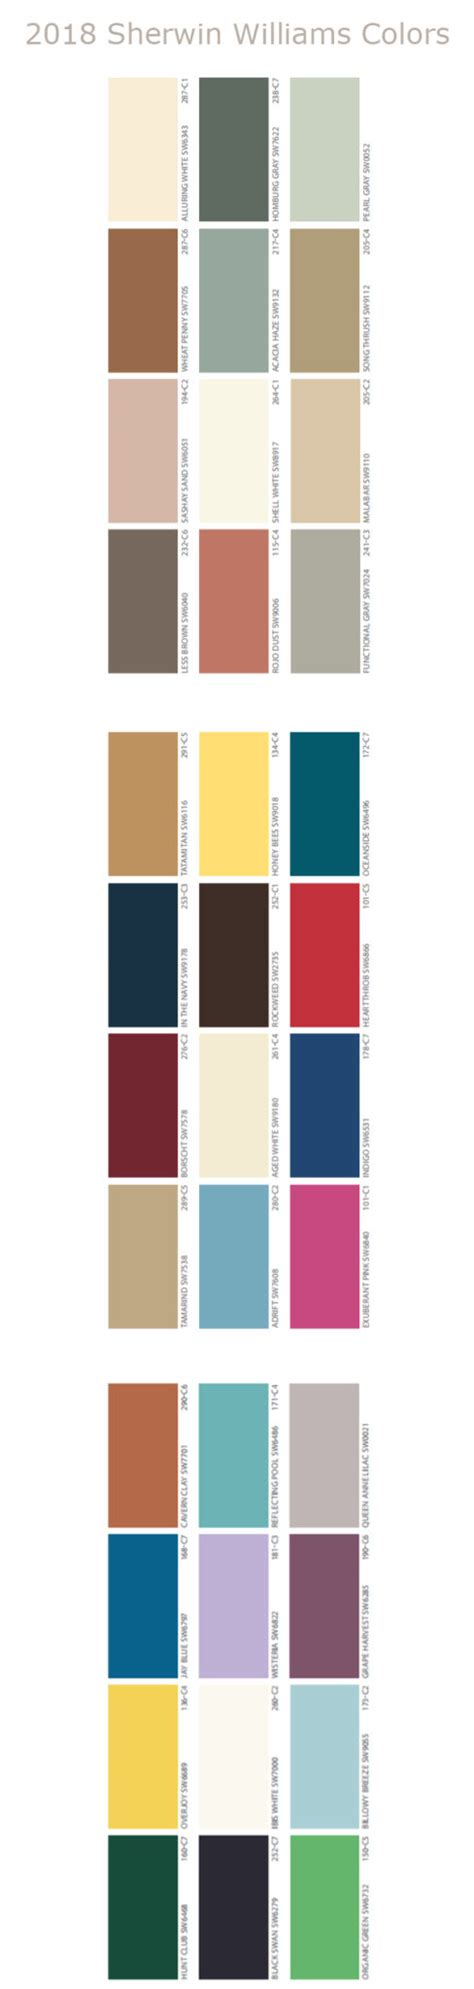 sherwin williams paint color codes 2018 paint color trends nomadic decorator